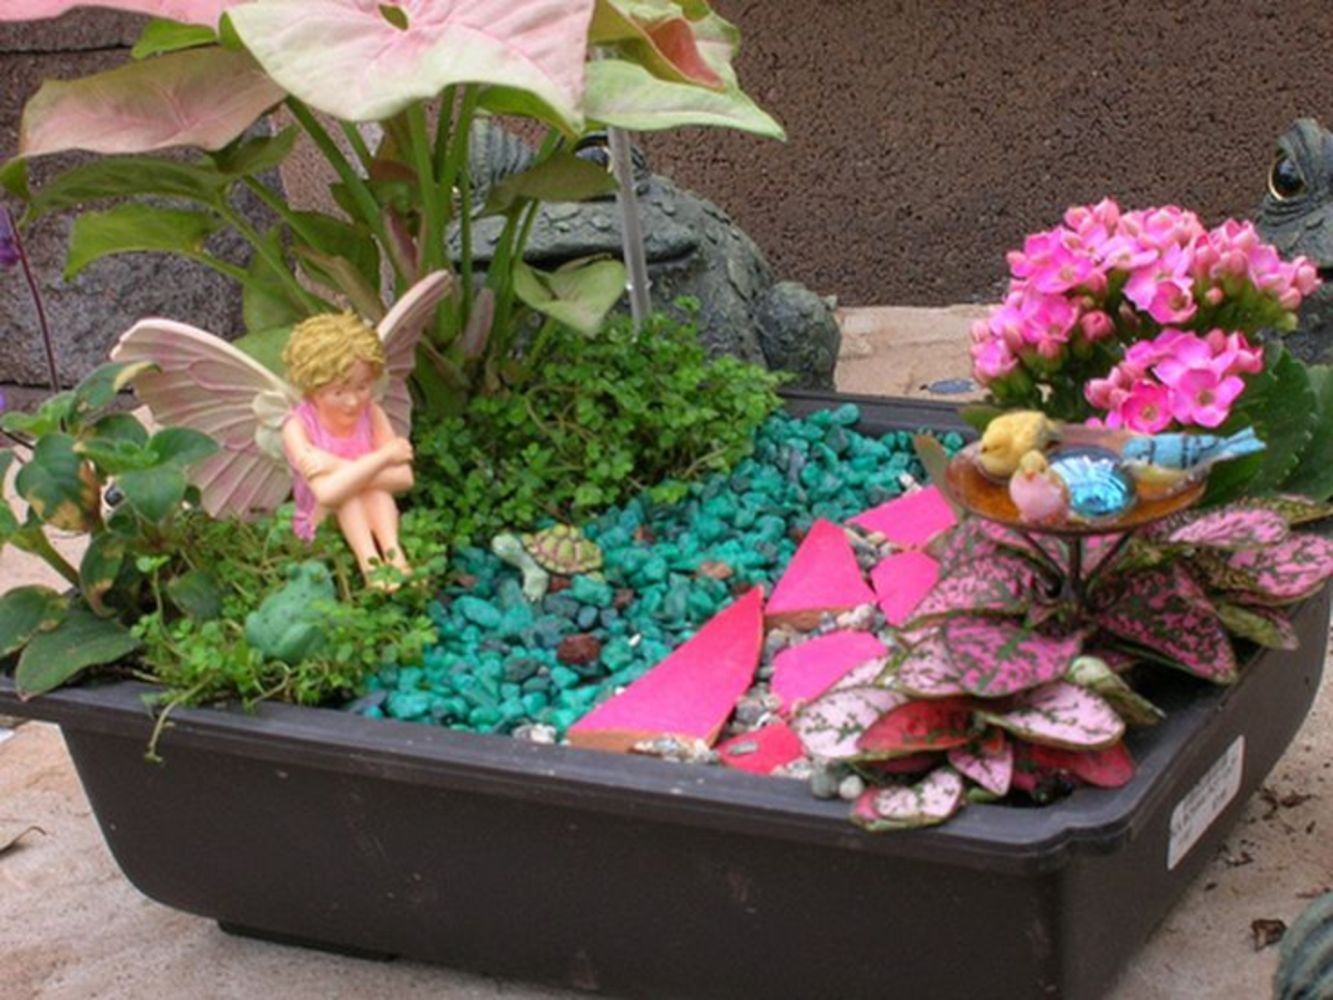 cool 29 Cheap and Magical Fairy Garden Ideas https://wartaku.net/2017/05/30/29-cheap-magical-fairy-garden-ideas/